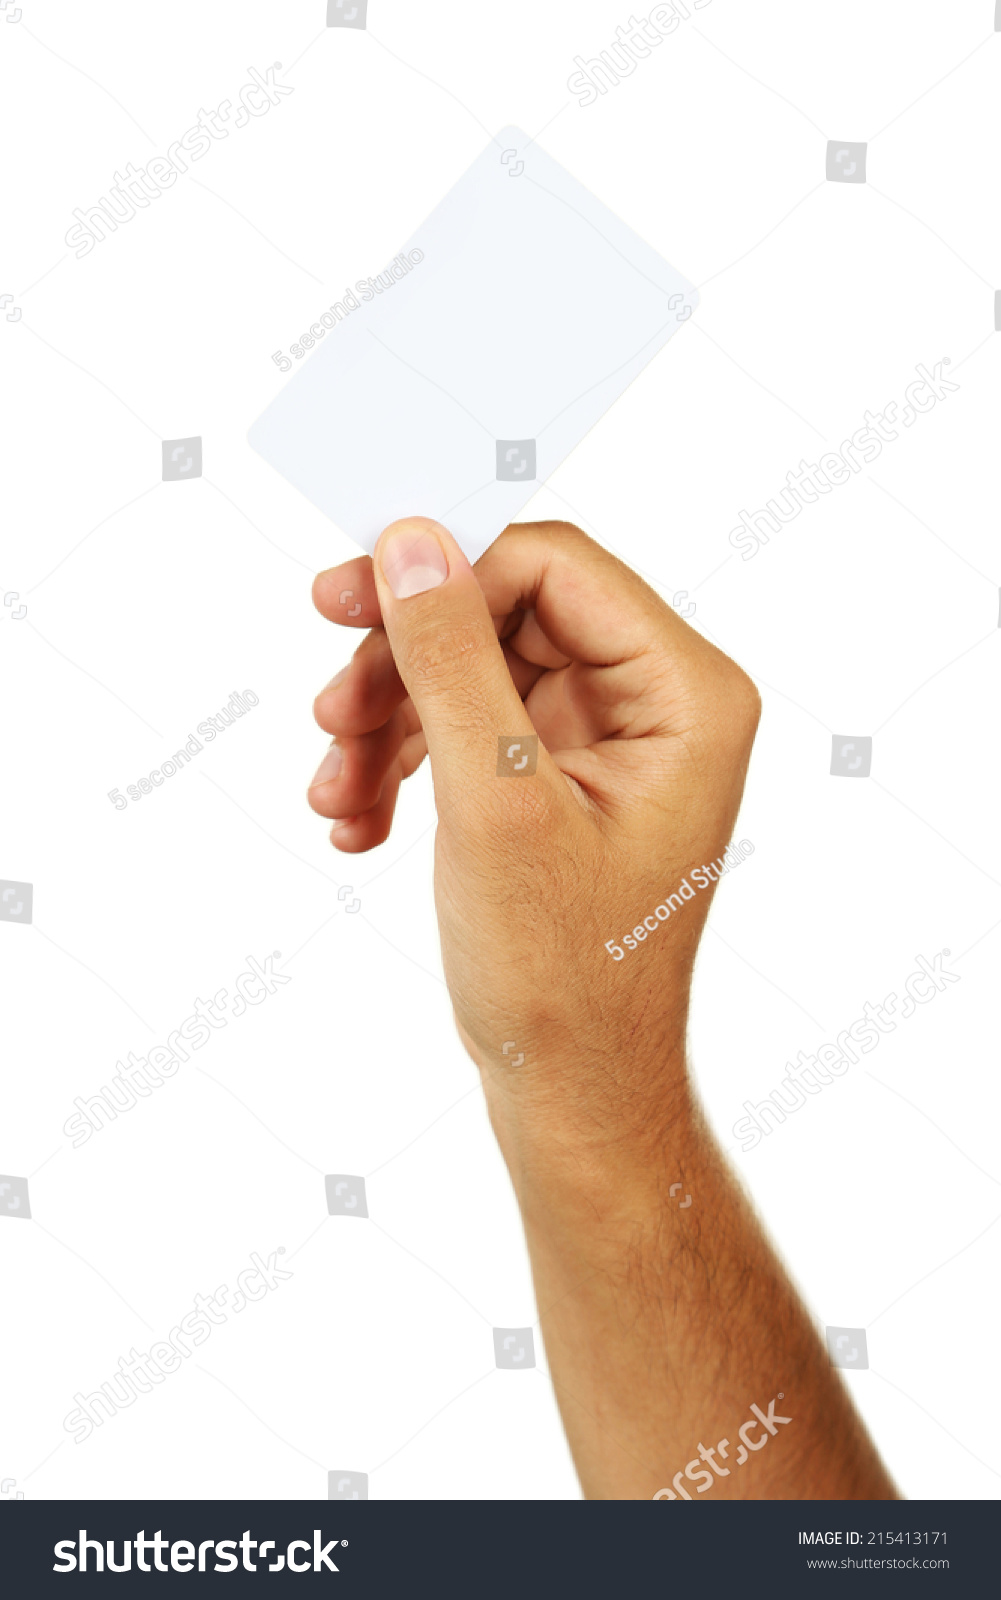 Hand Holding Business Card Stock Photo (100% Legal Protection ...